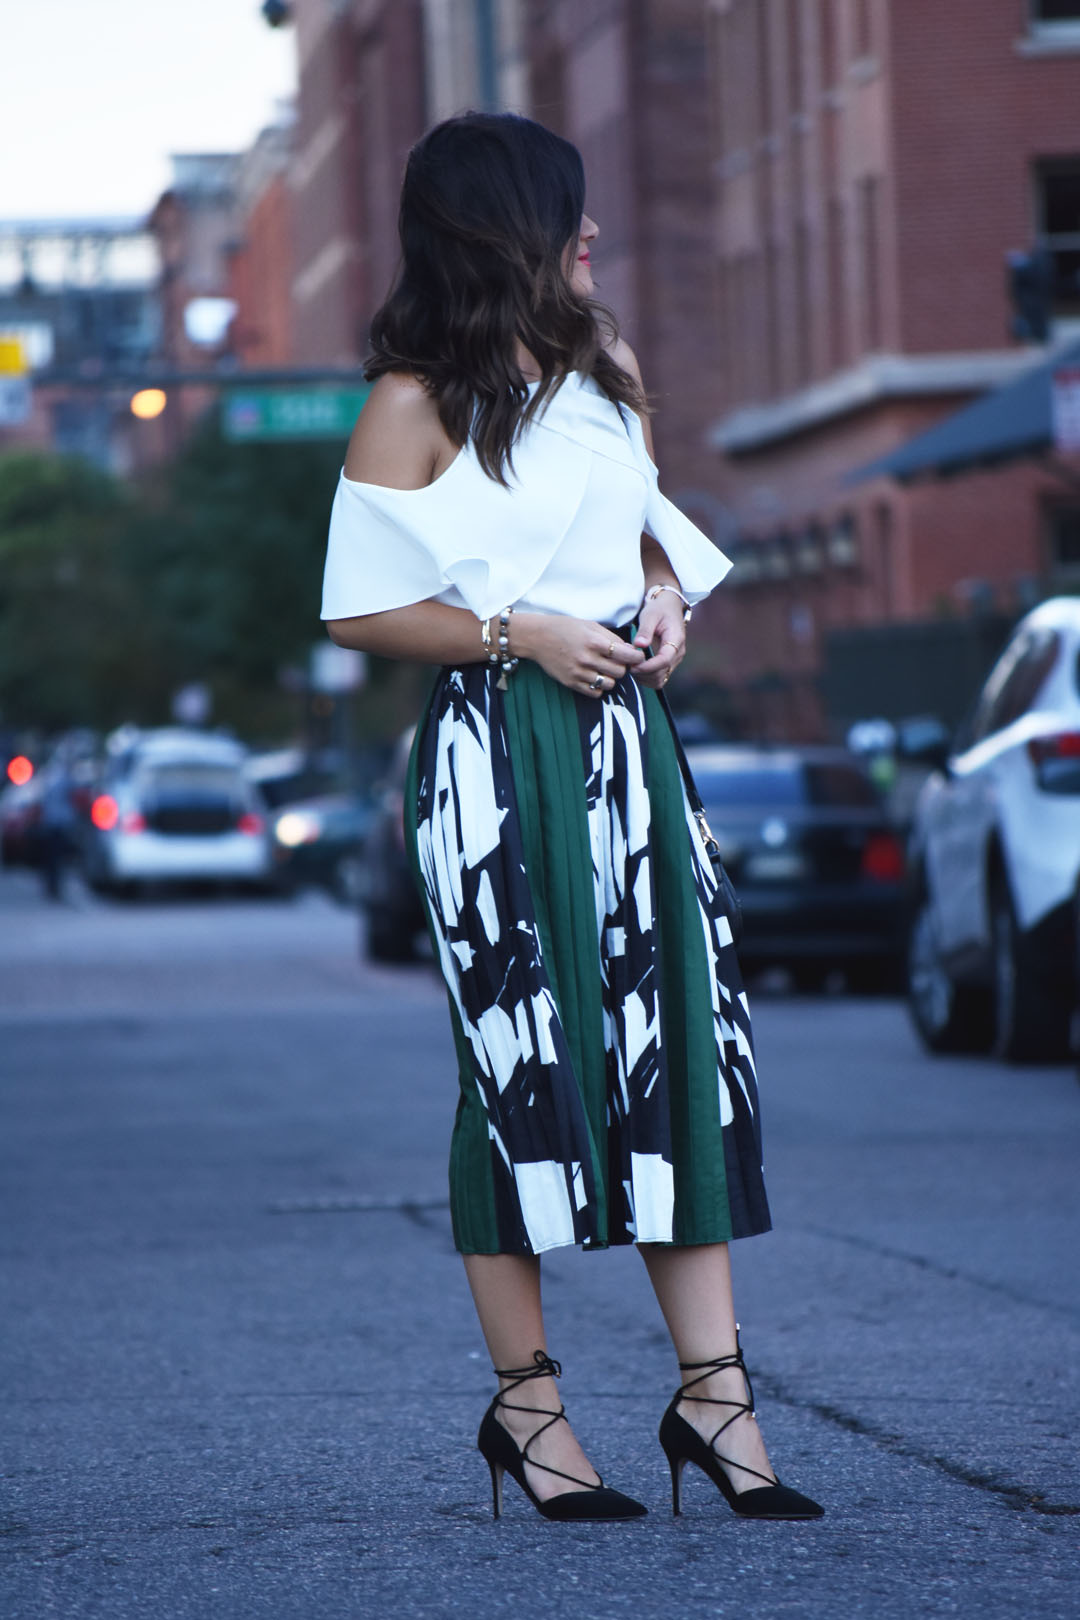 Carolina Hellal of Chic Talk wearing a pleated green skirt and cold shoulder top